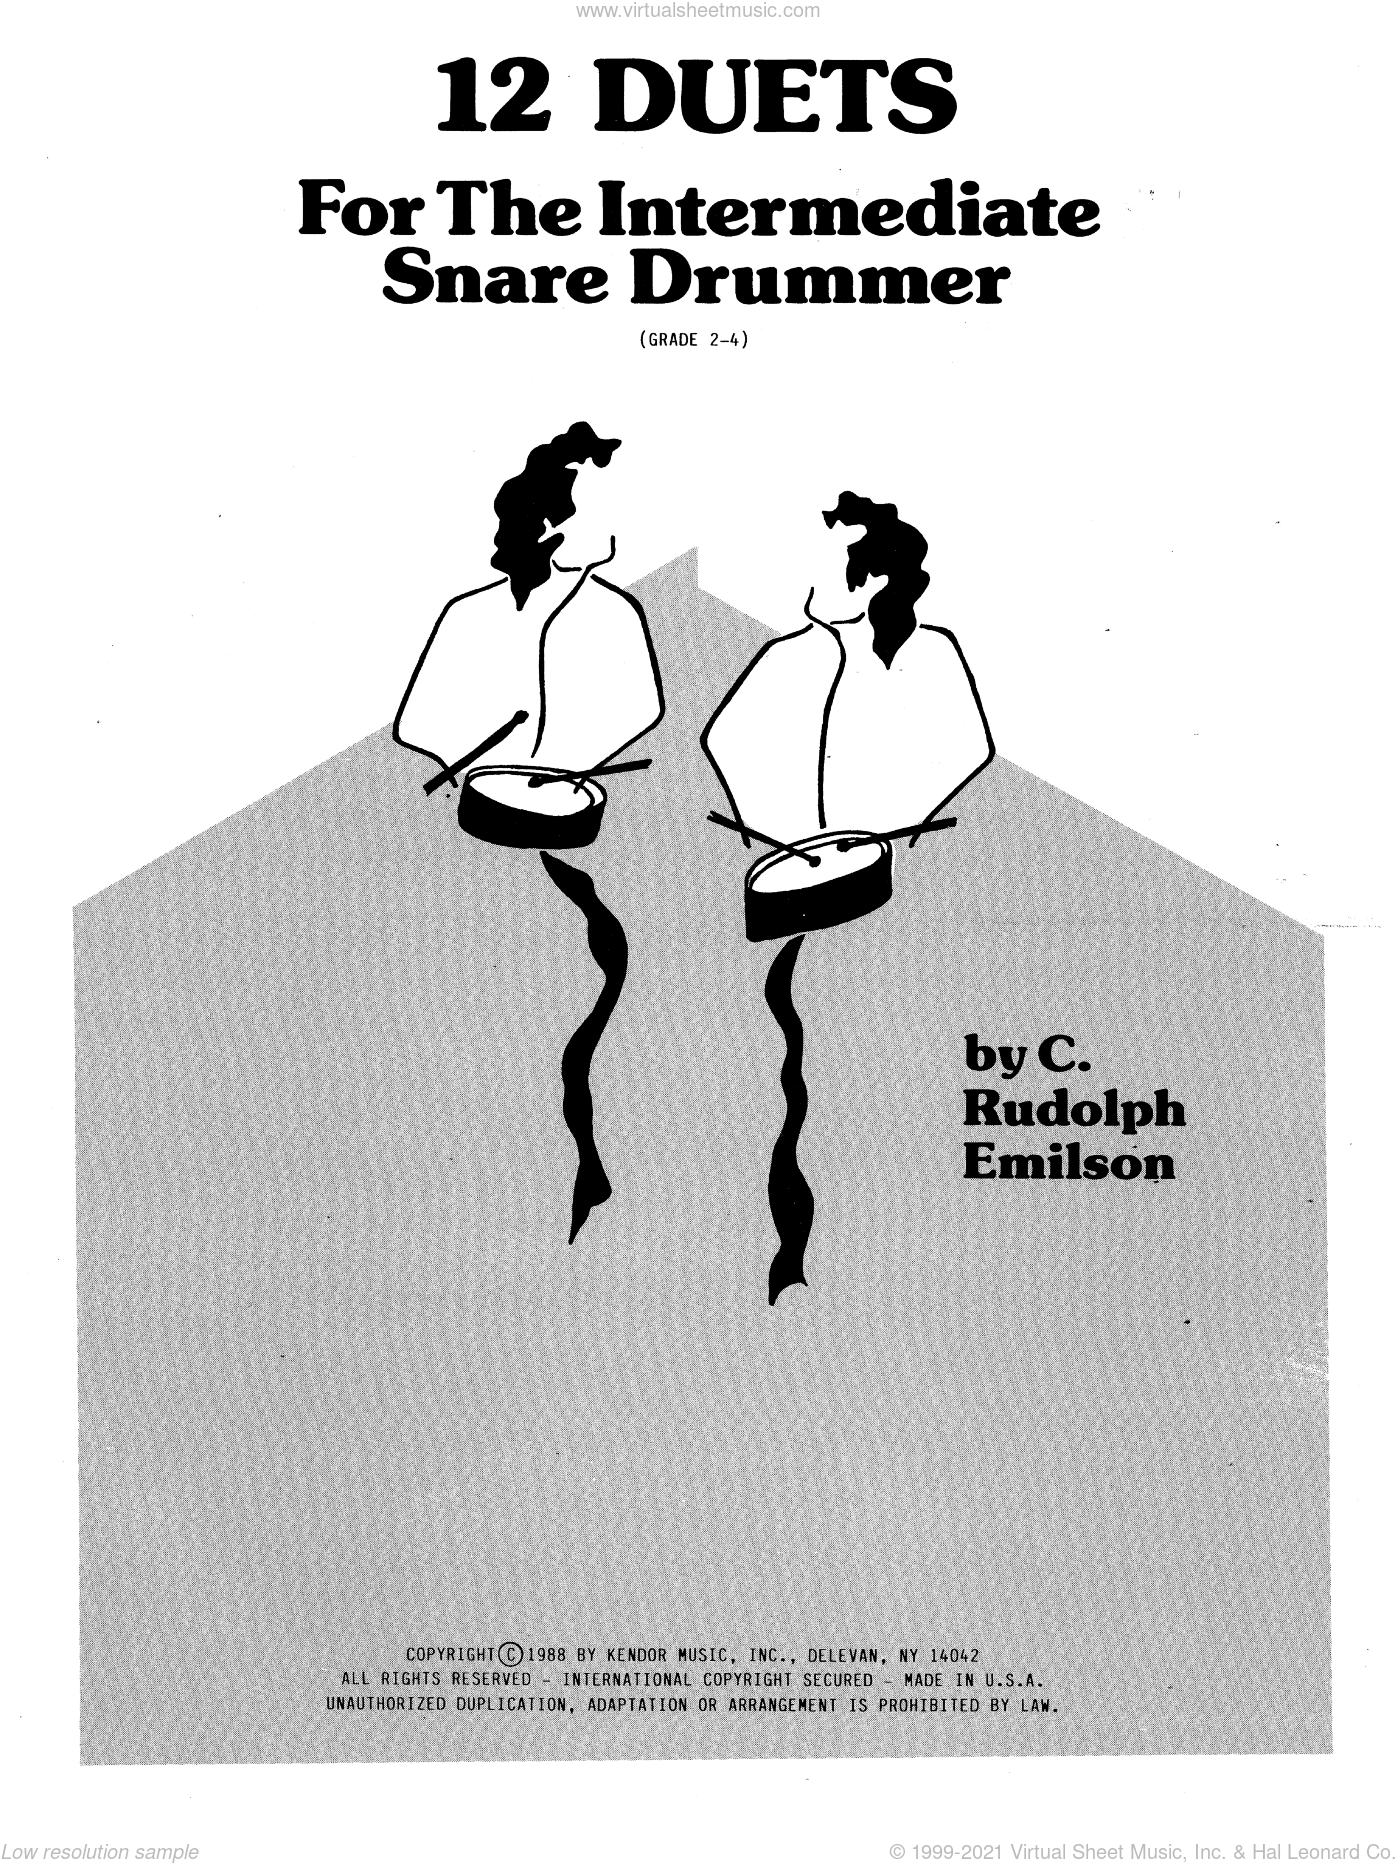 12 Duets For The Intermediate Snare Drummer sheet music for percussions by Emilson. Score Image Preview.